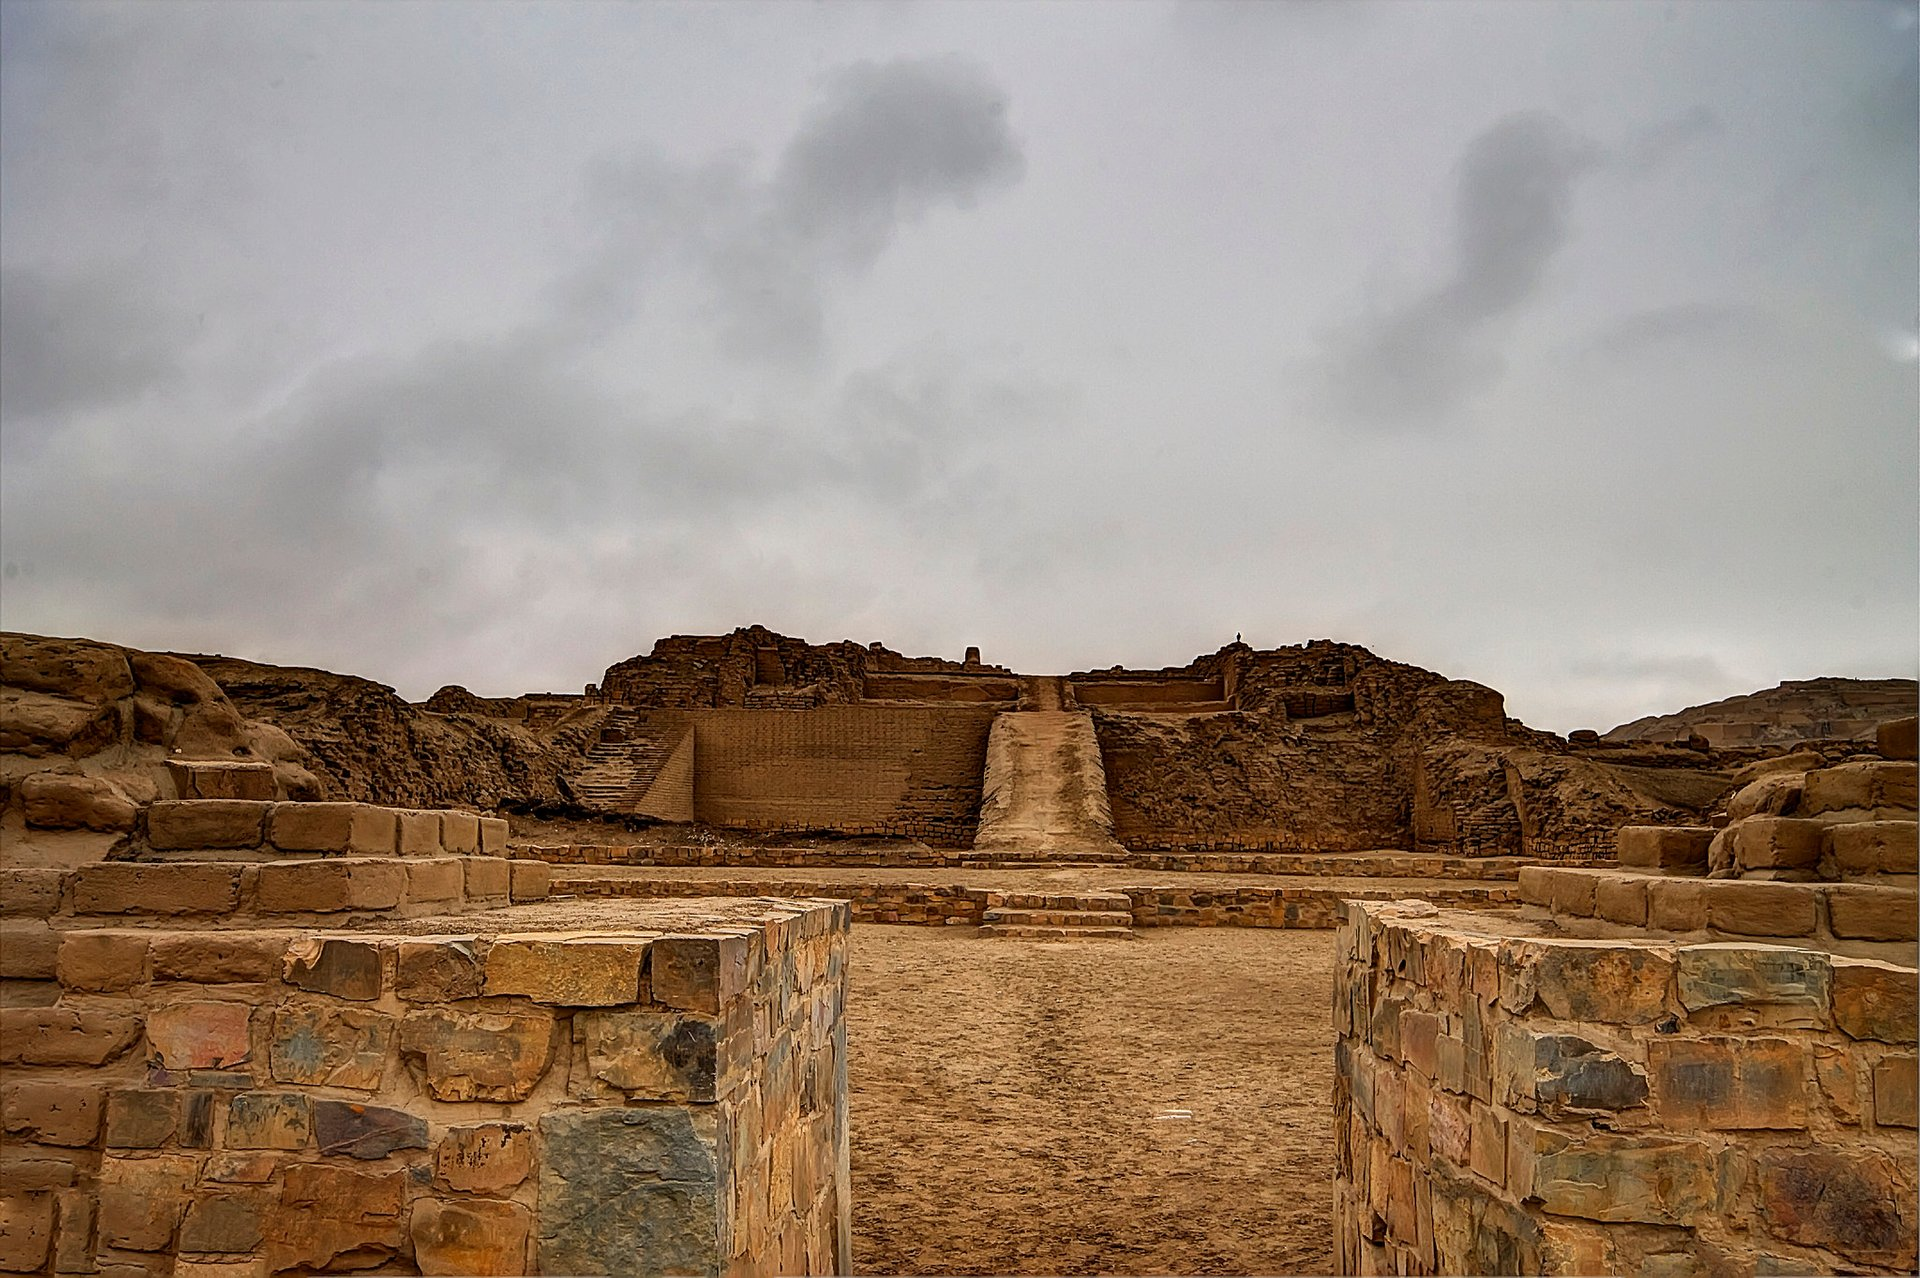 Pachacamac in Peru 2019 - Best Time